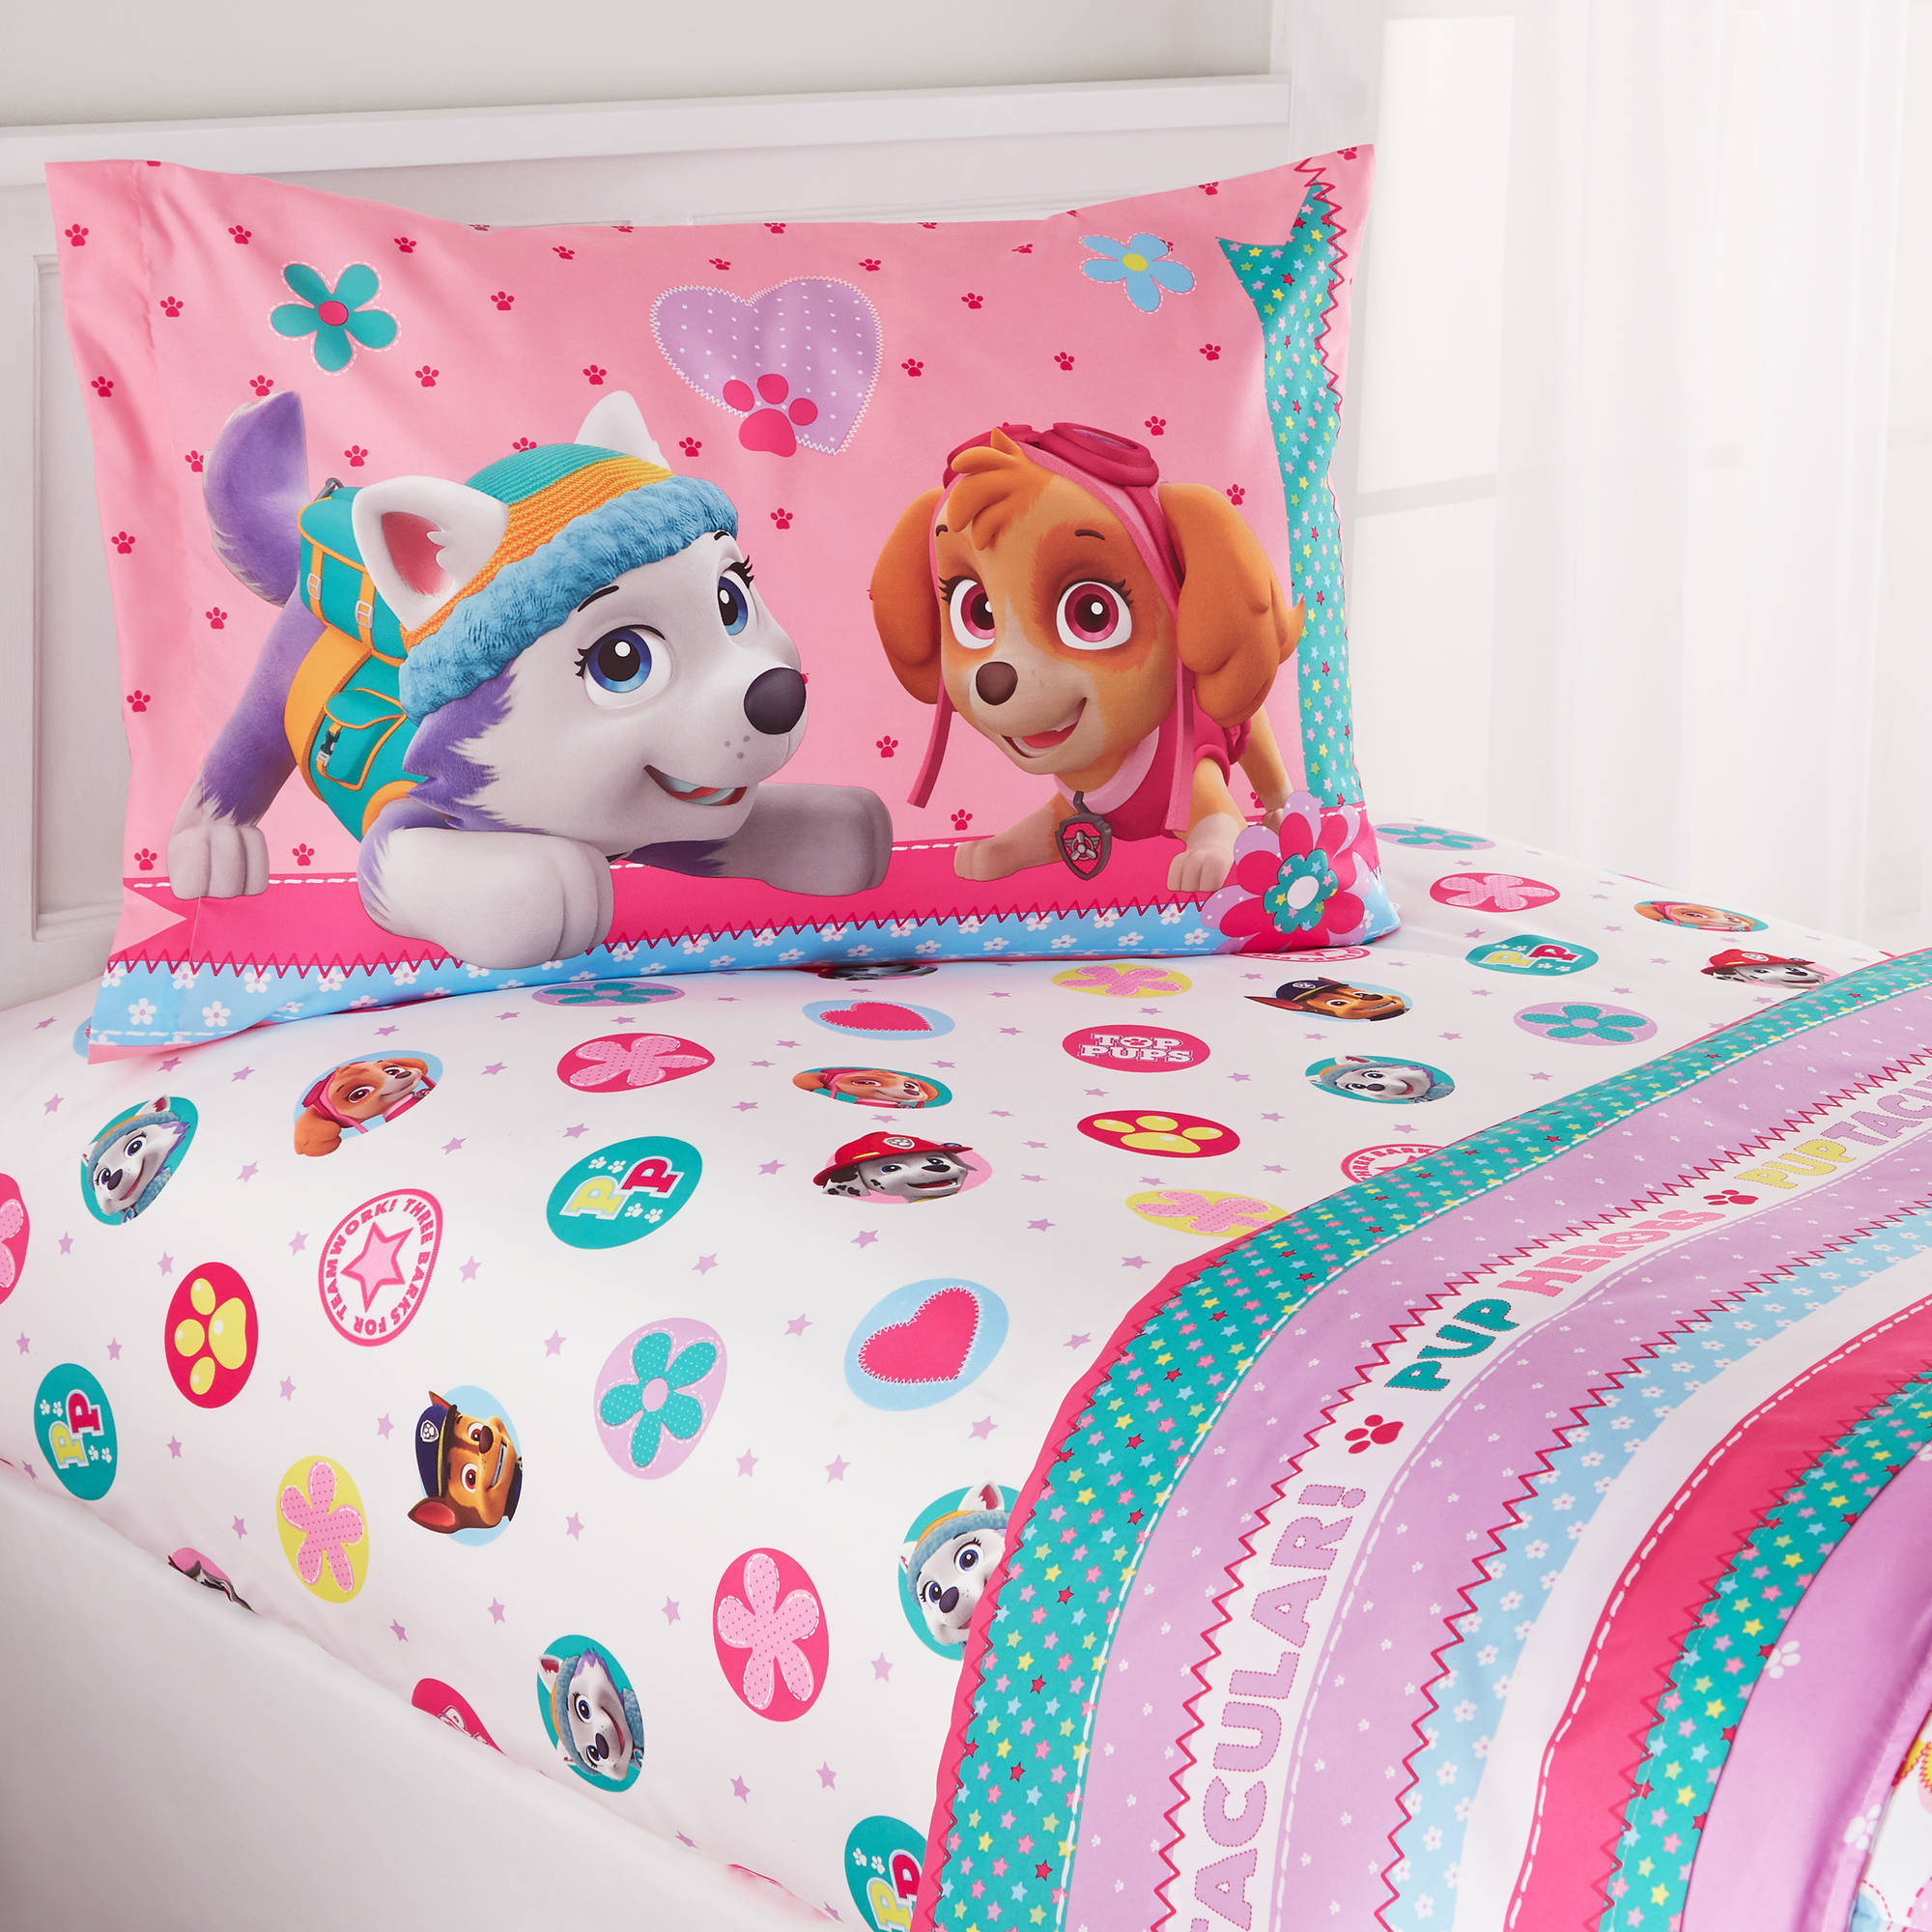 PAW Patrol Girl 'Best Pup' Twin Bedding Sheet Set